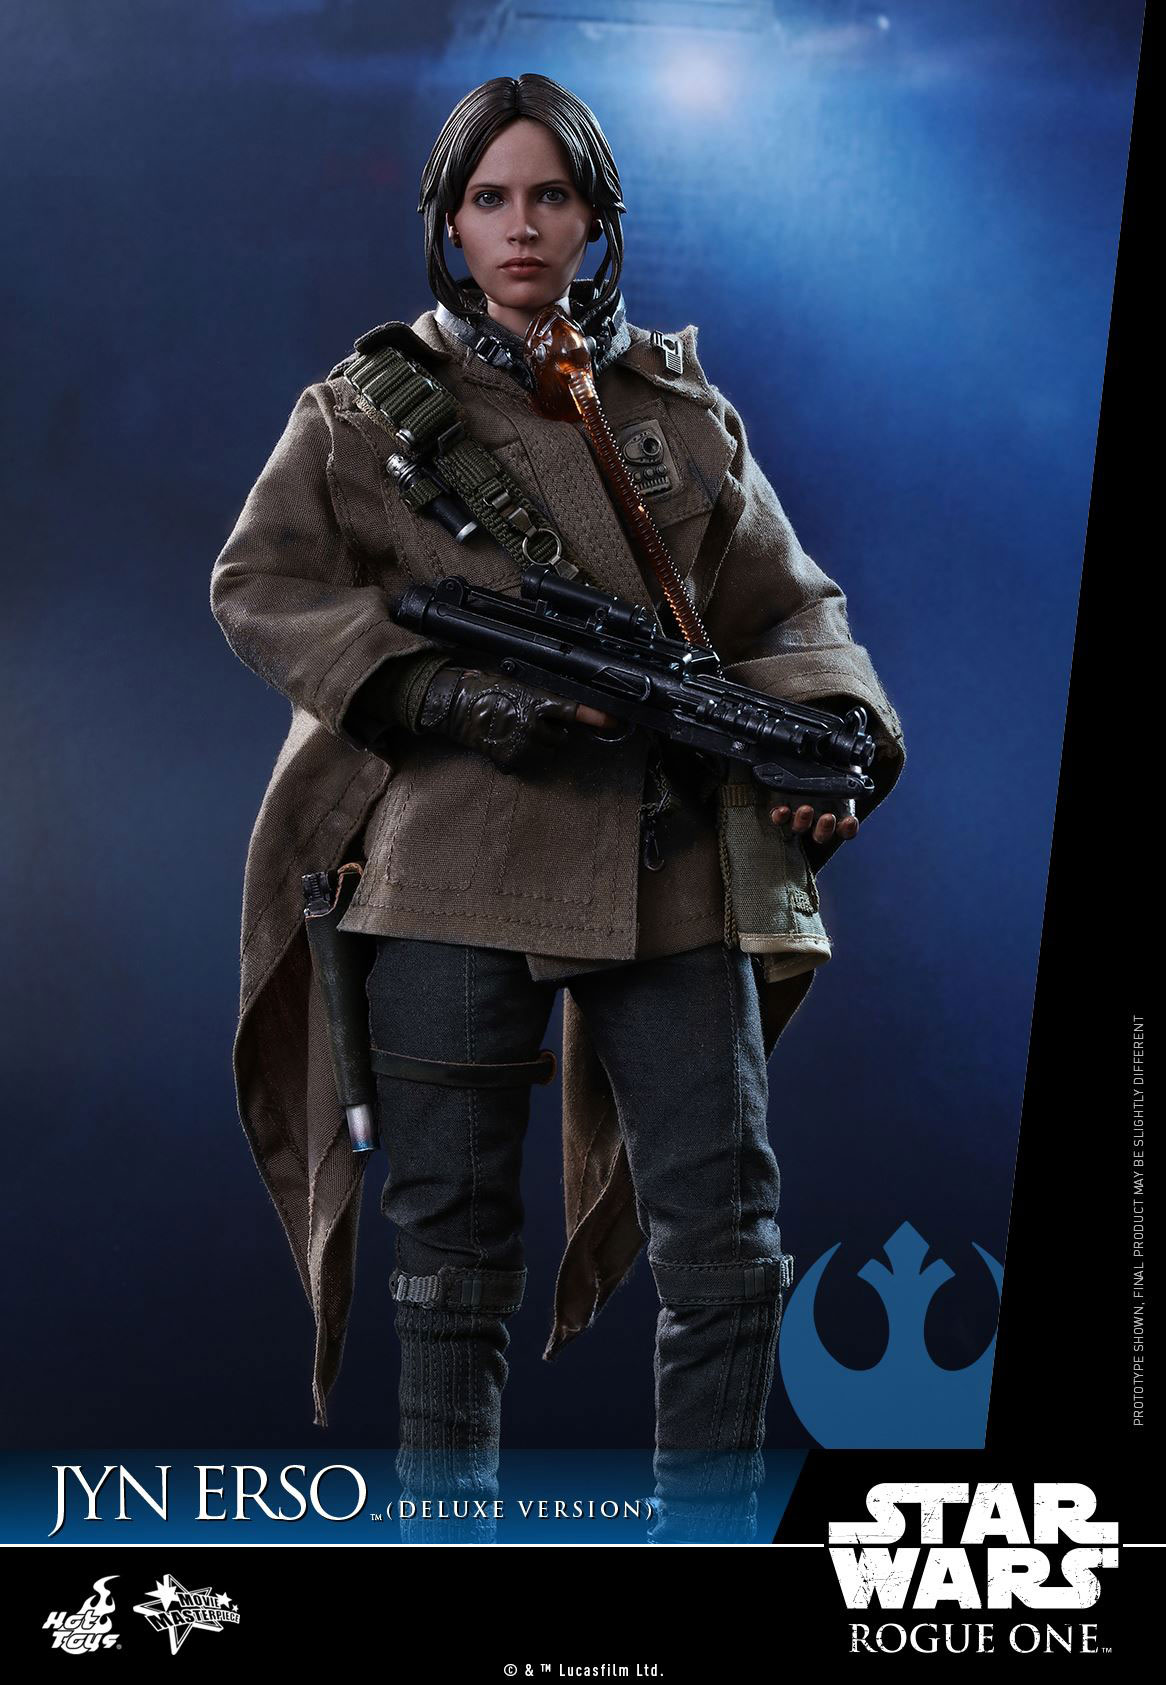 hot-toys-star-wars-rogue-one-figure-deluxe-version-5